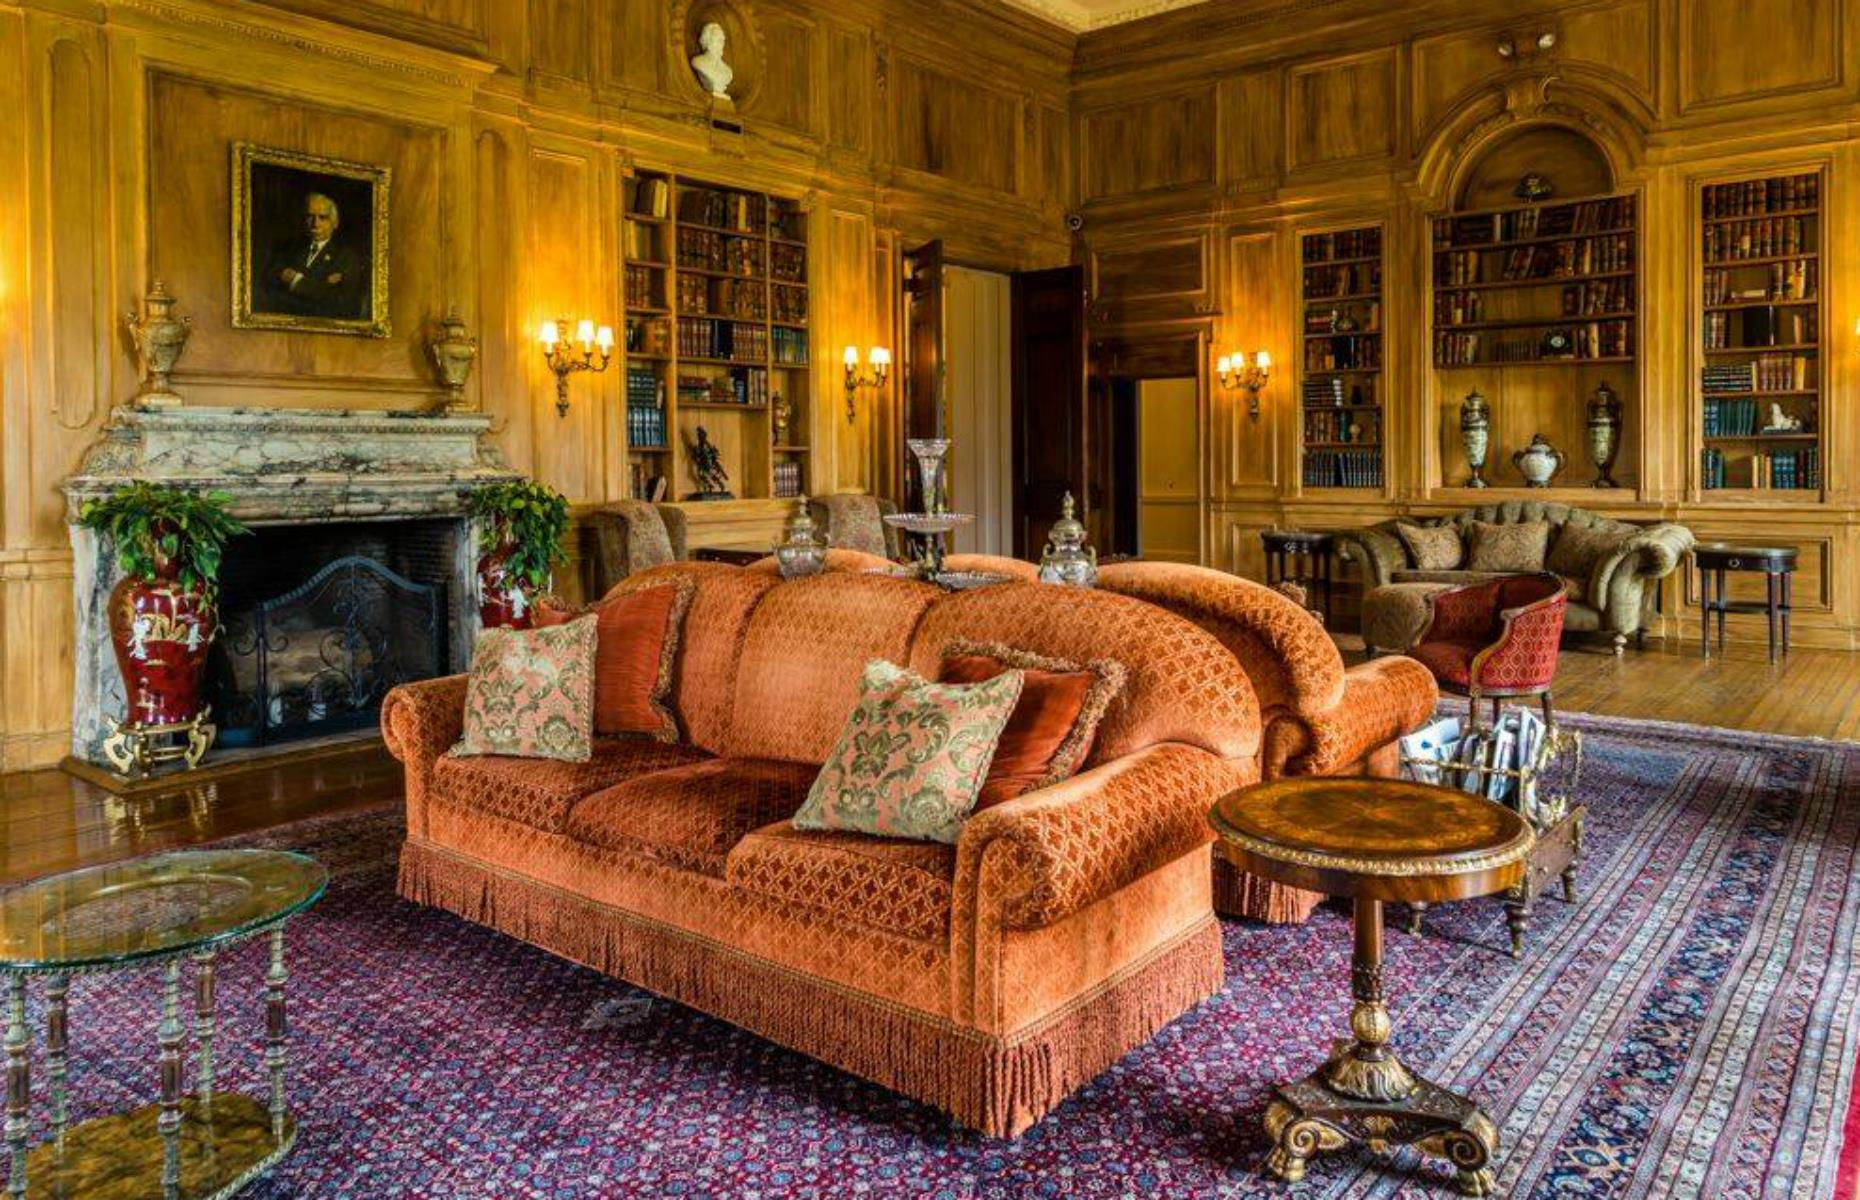 Slide 29 of 53: Even the name is fascinating – it's an acronym of Otto Hermann Kahn, the financier who built the French-style château. He used the estate as a summer home, hosting lavish parties worthy of Jay Gatsby himself in rooms such as the library, in richly decorated jewel shades.